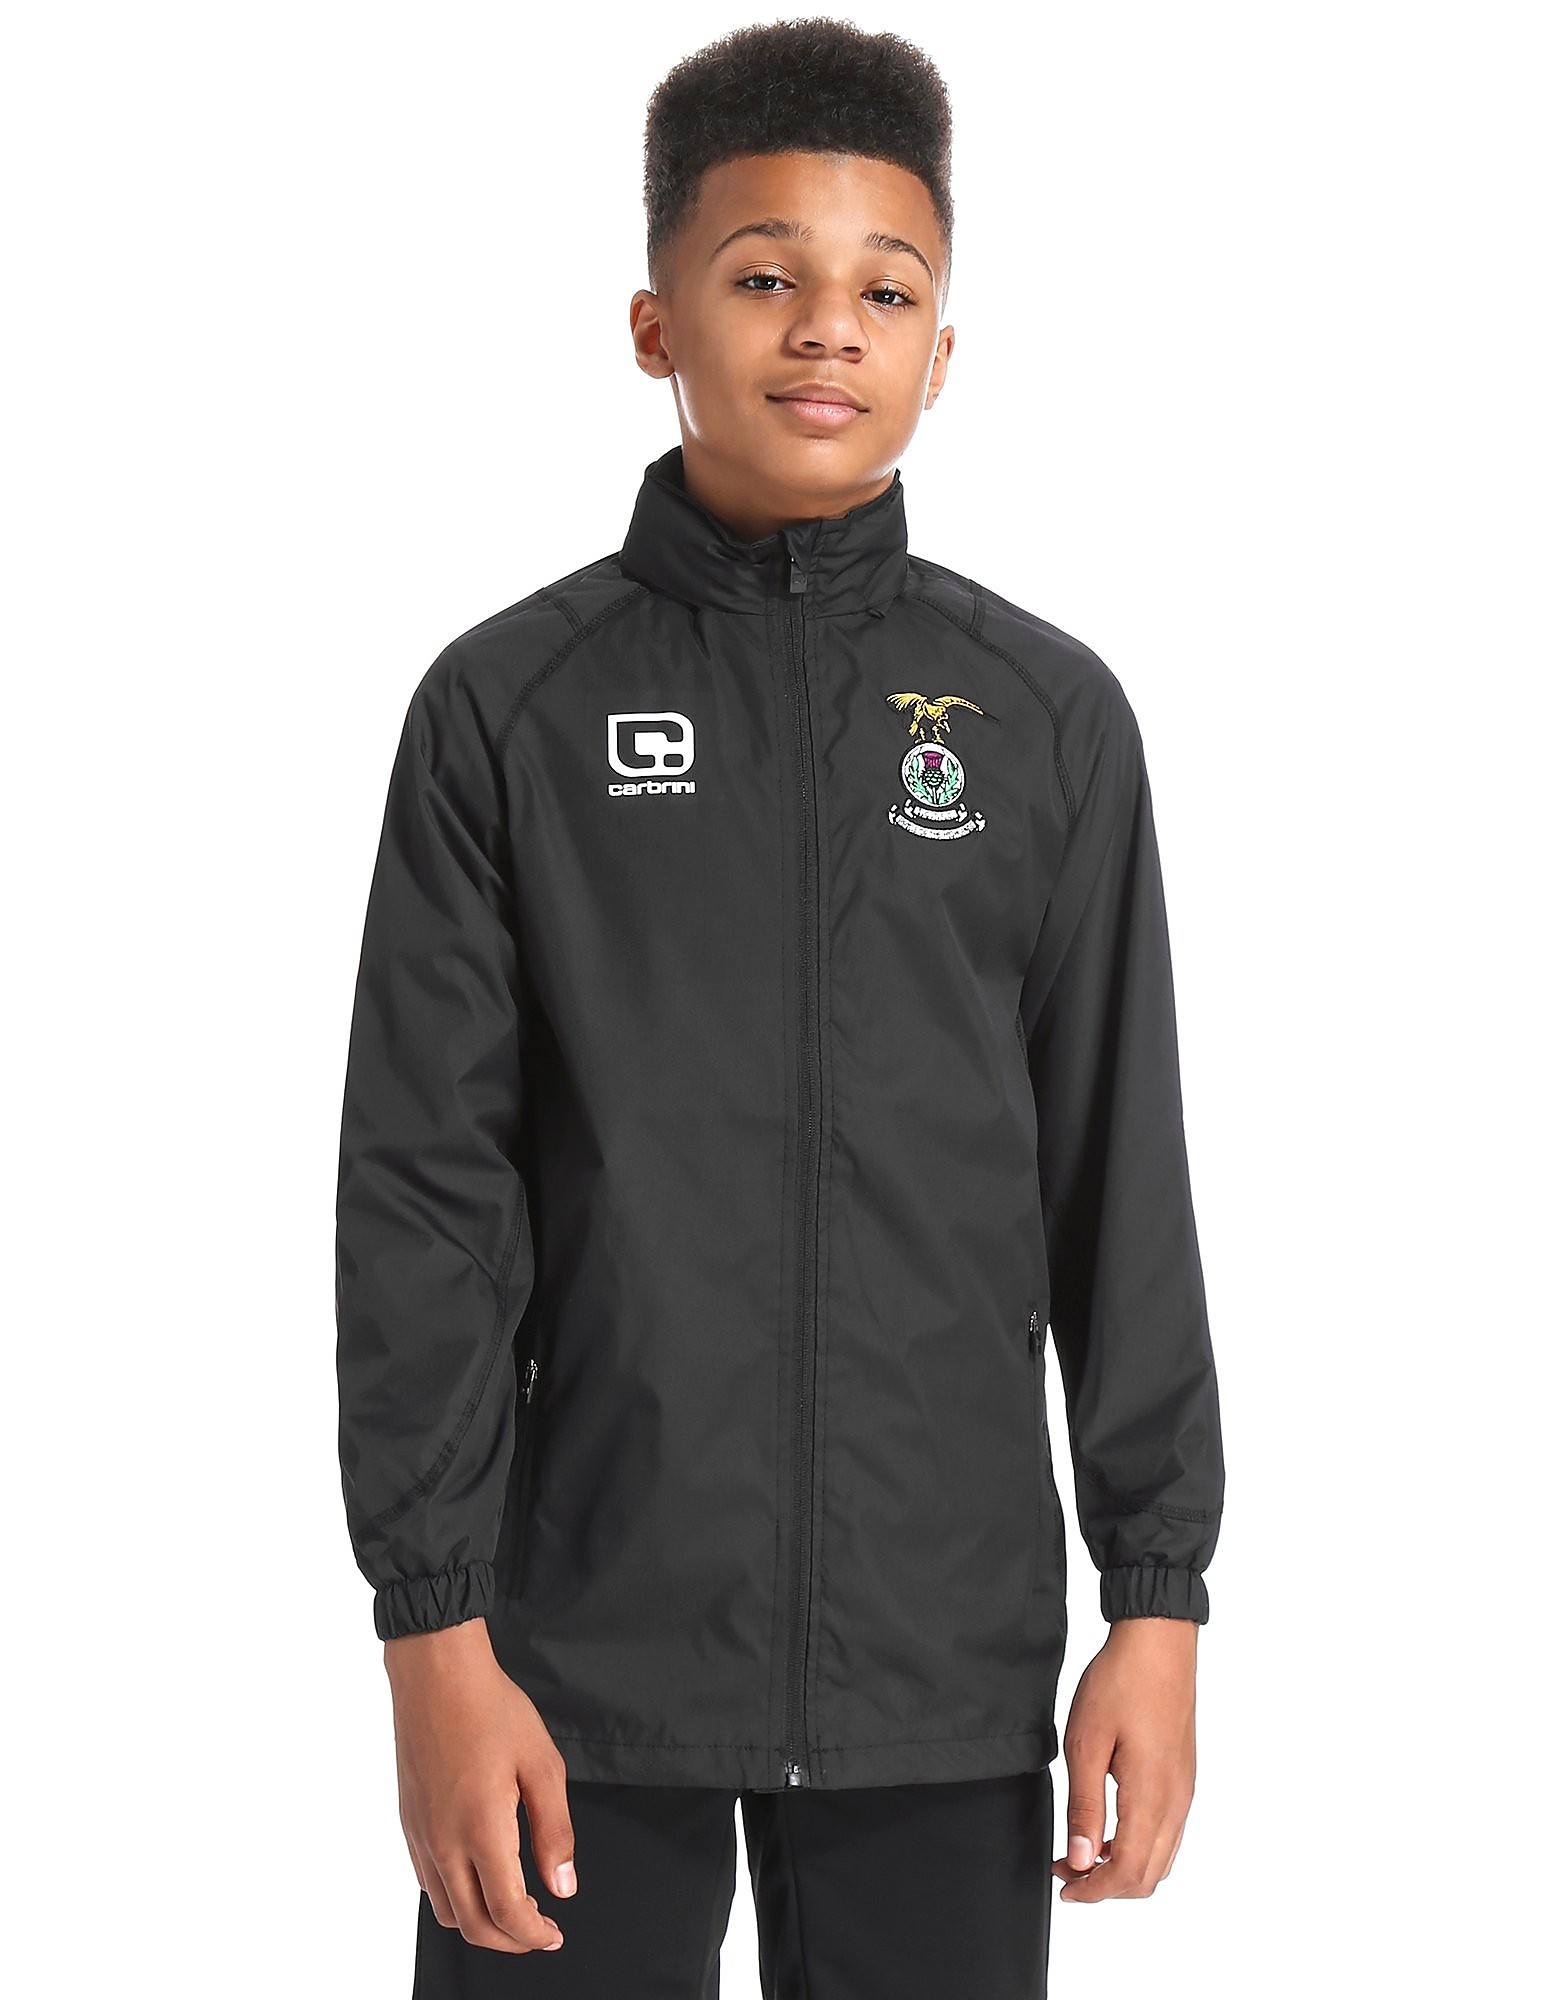 Carbrini Inverness CT 2016/ 17 Shower Jacket Junior